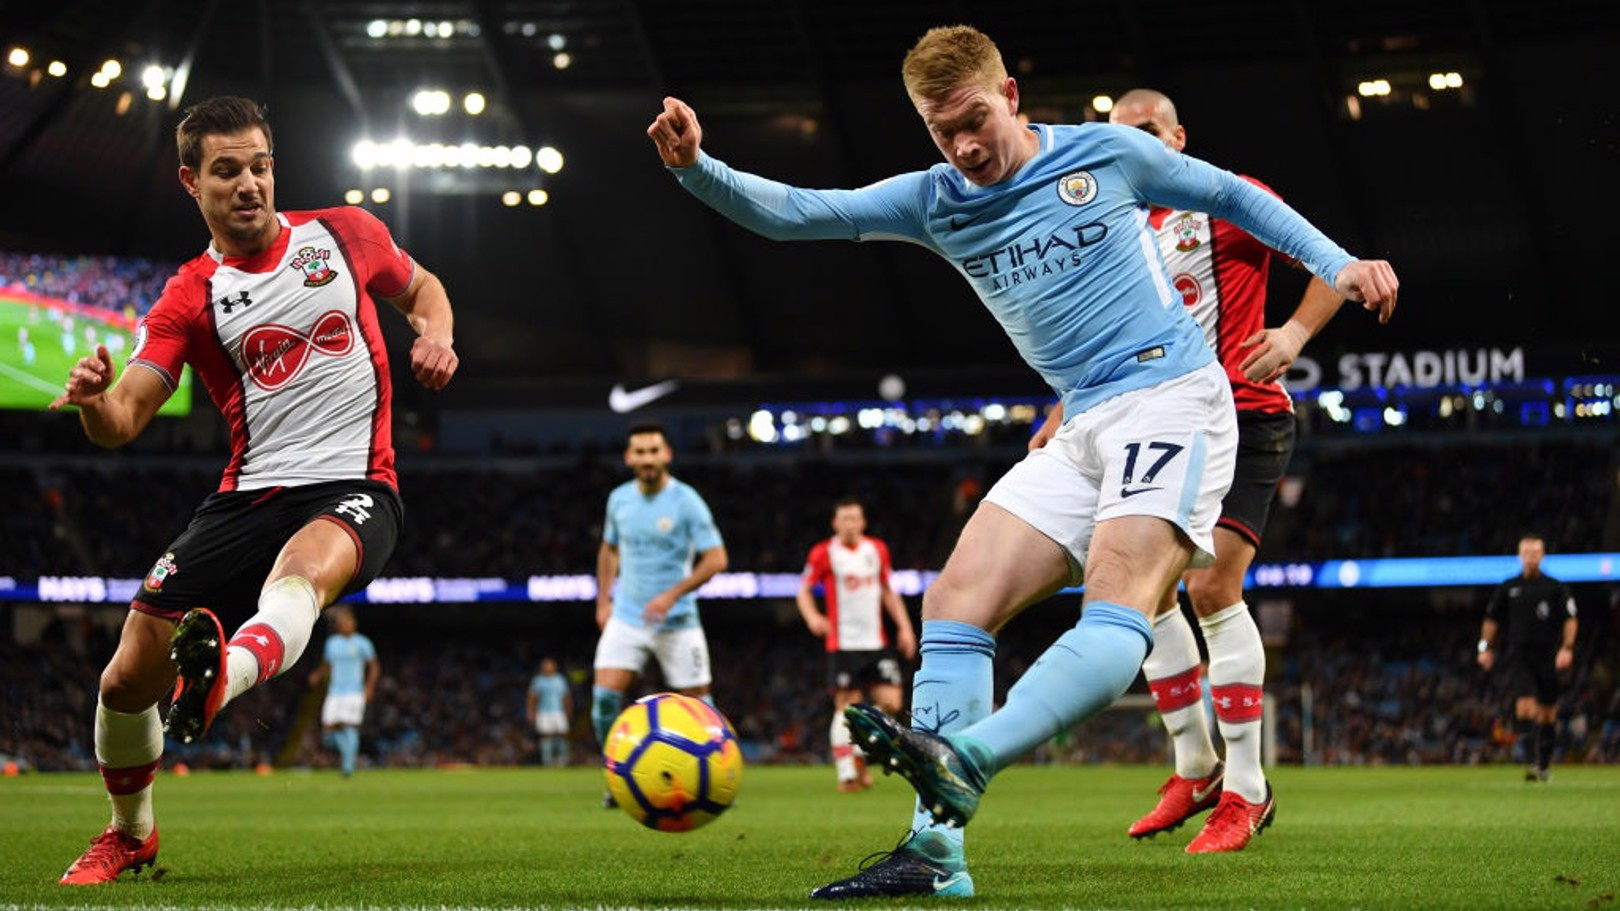 PROBING: Kevin De Bruyne looks for an opening in Southampton's resolute defence.